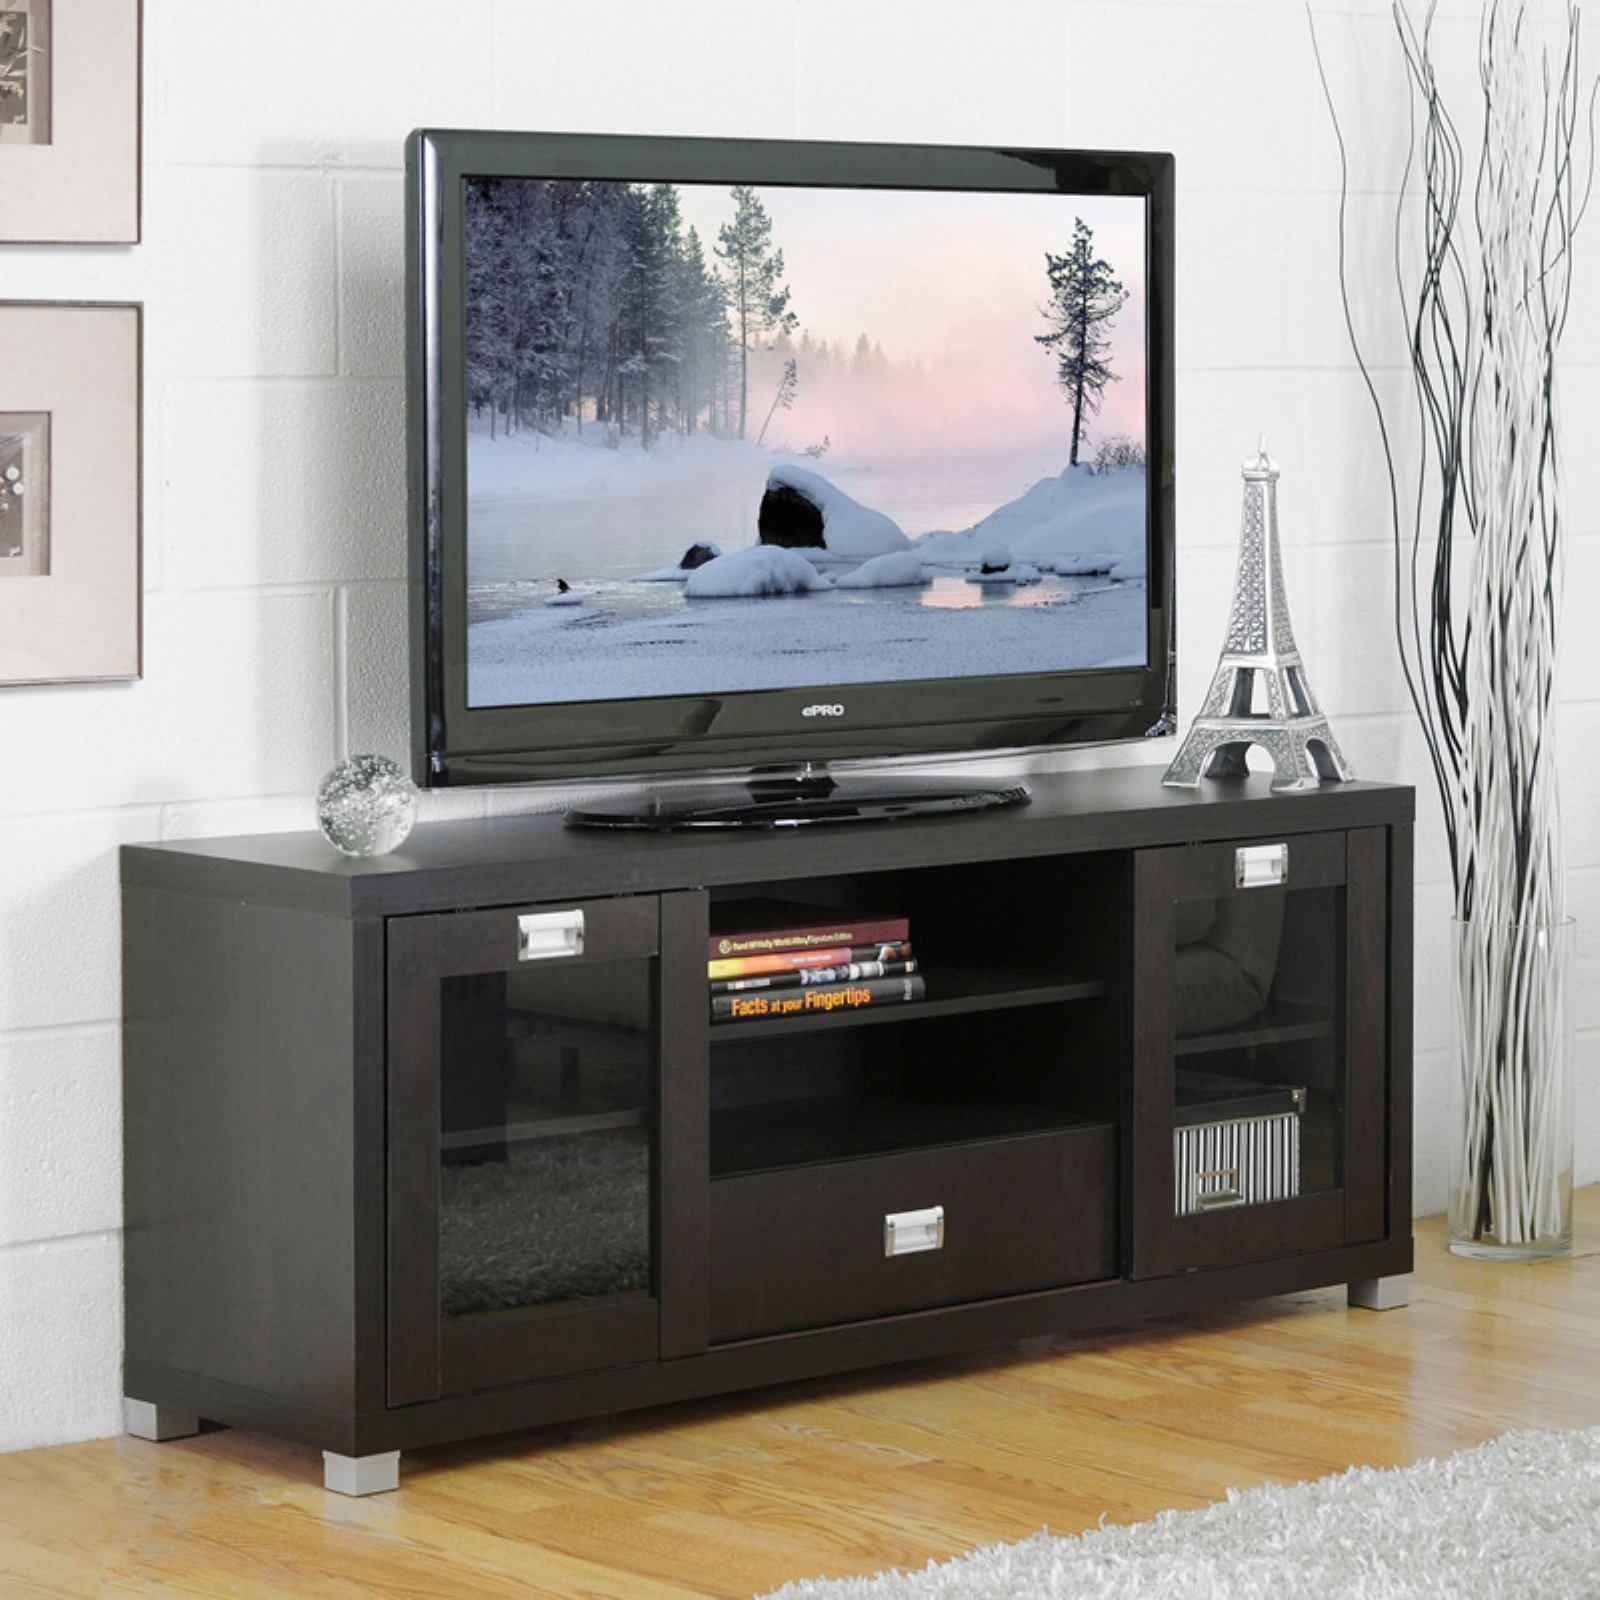 Baxton Studio Matlock Modern Espresso Tv Stand With Glass Doors